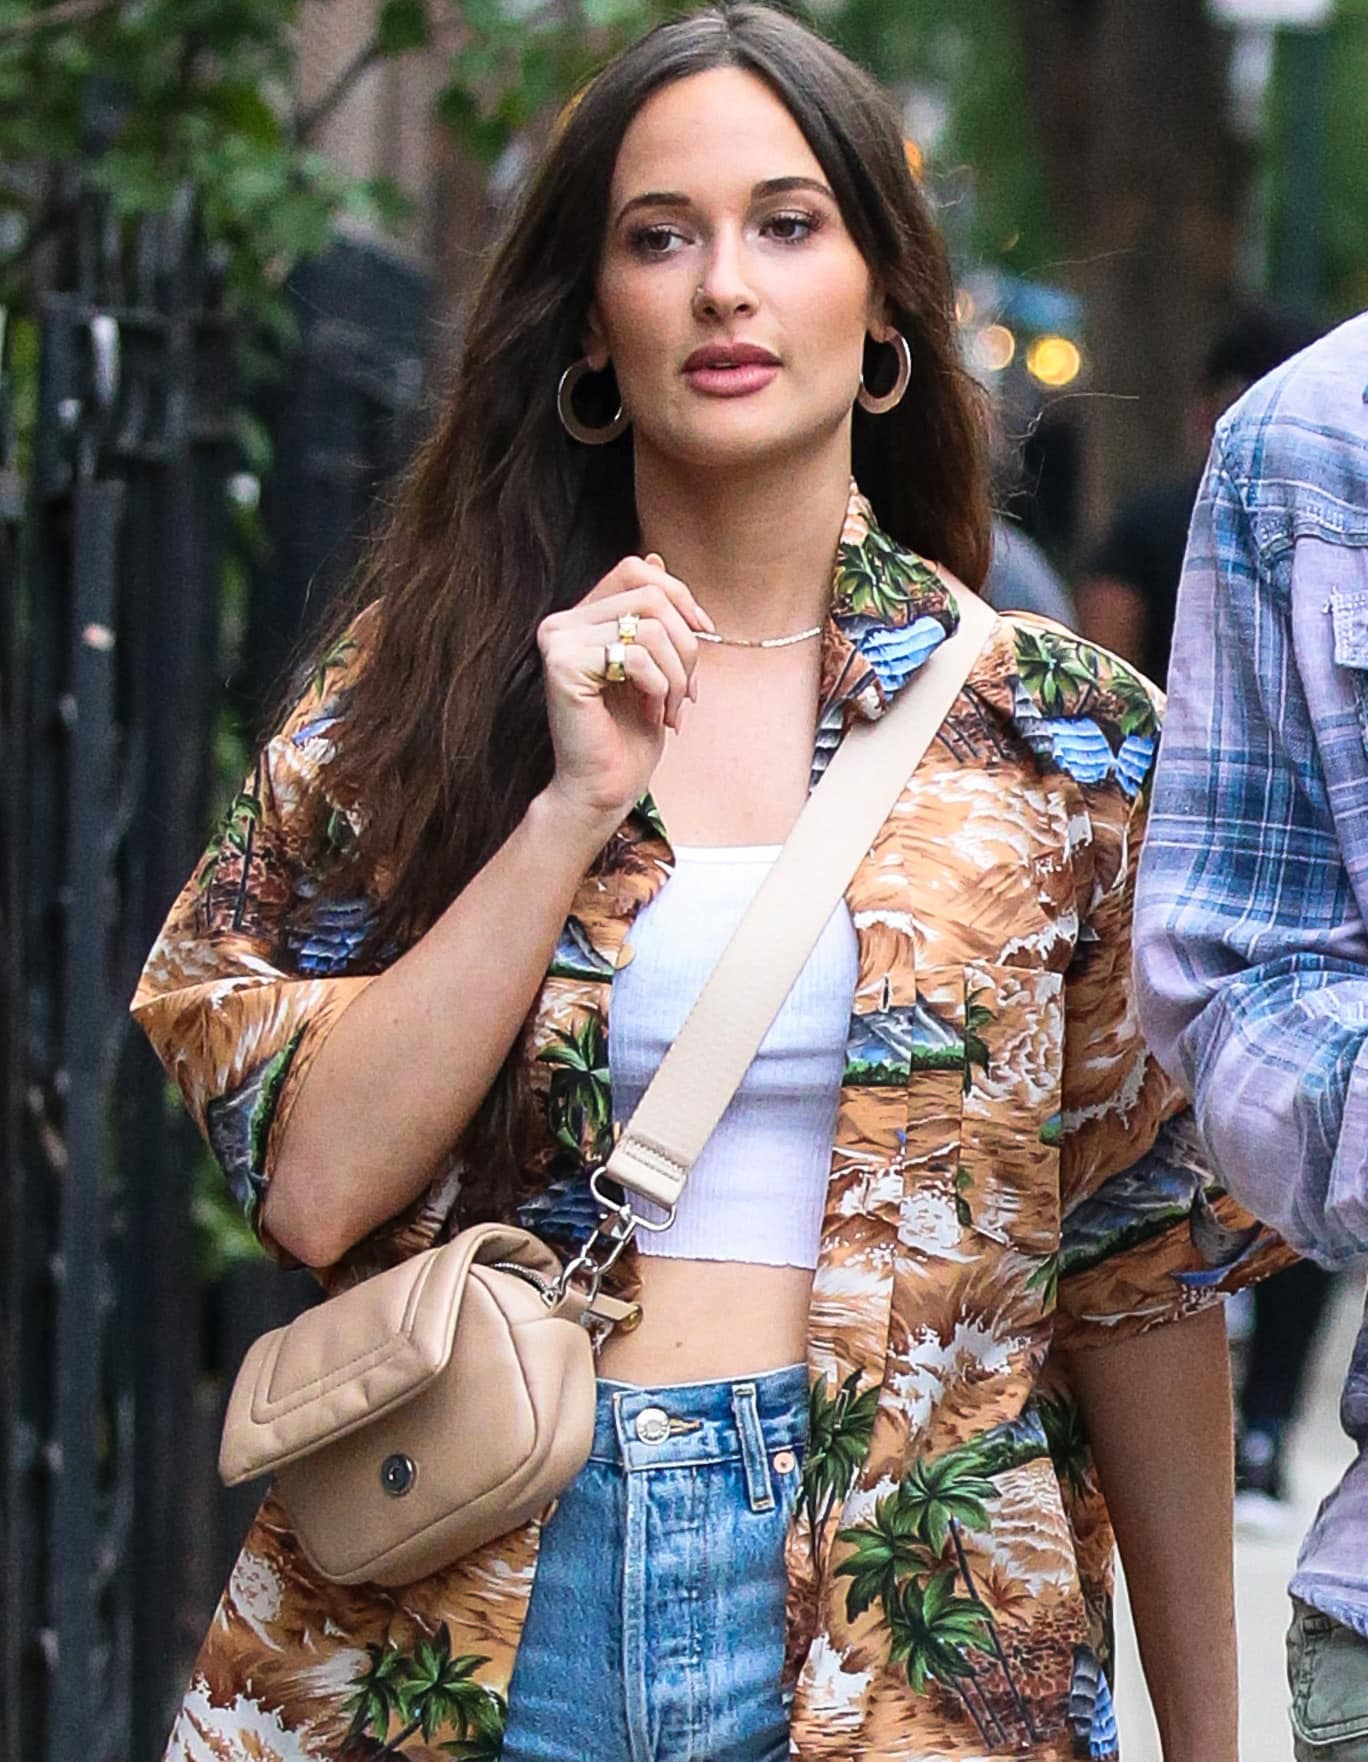 Kacey Musgraves is summer chic in her Hawaiian shirt and loose wavy hairstyle